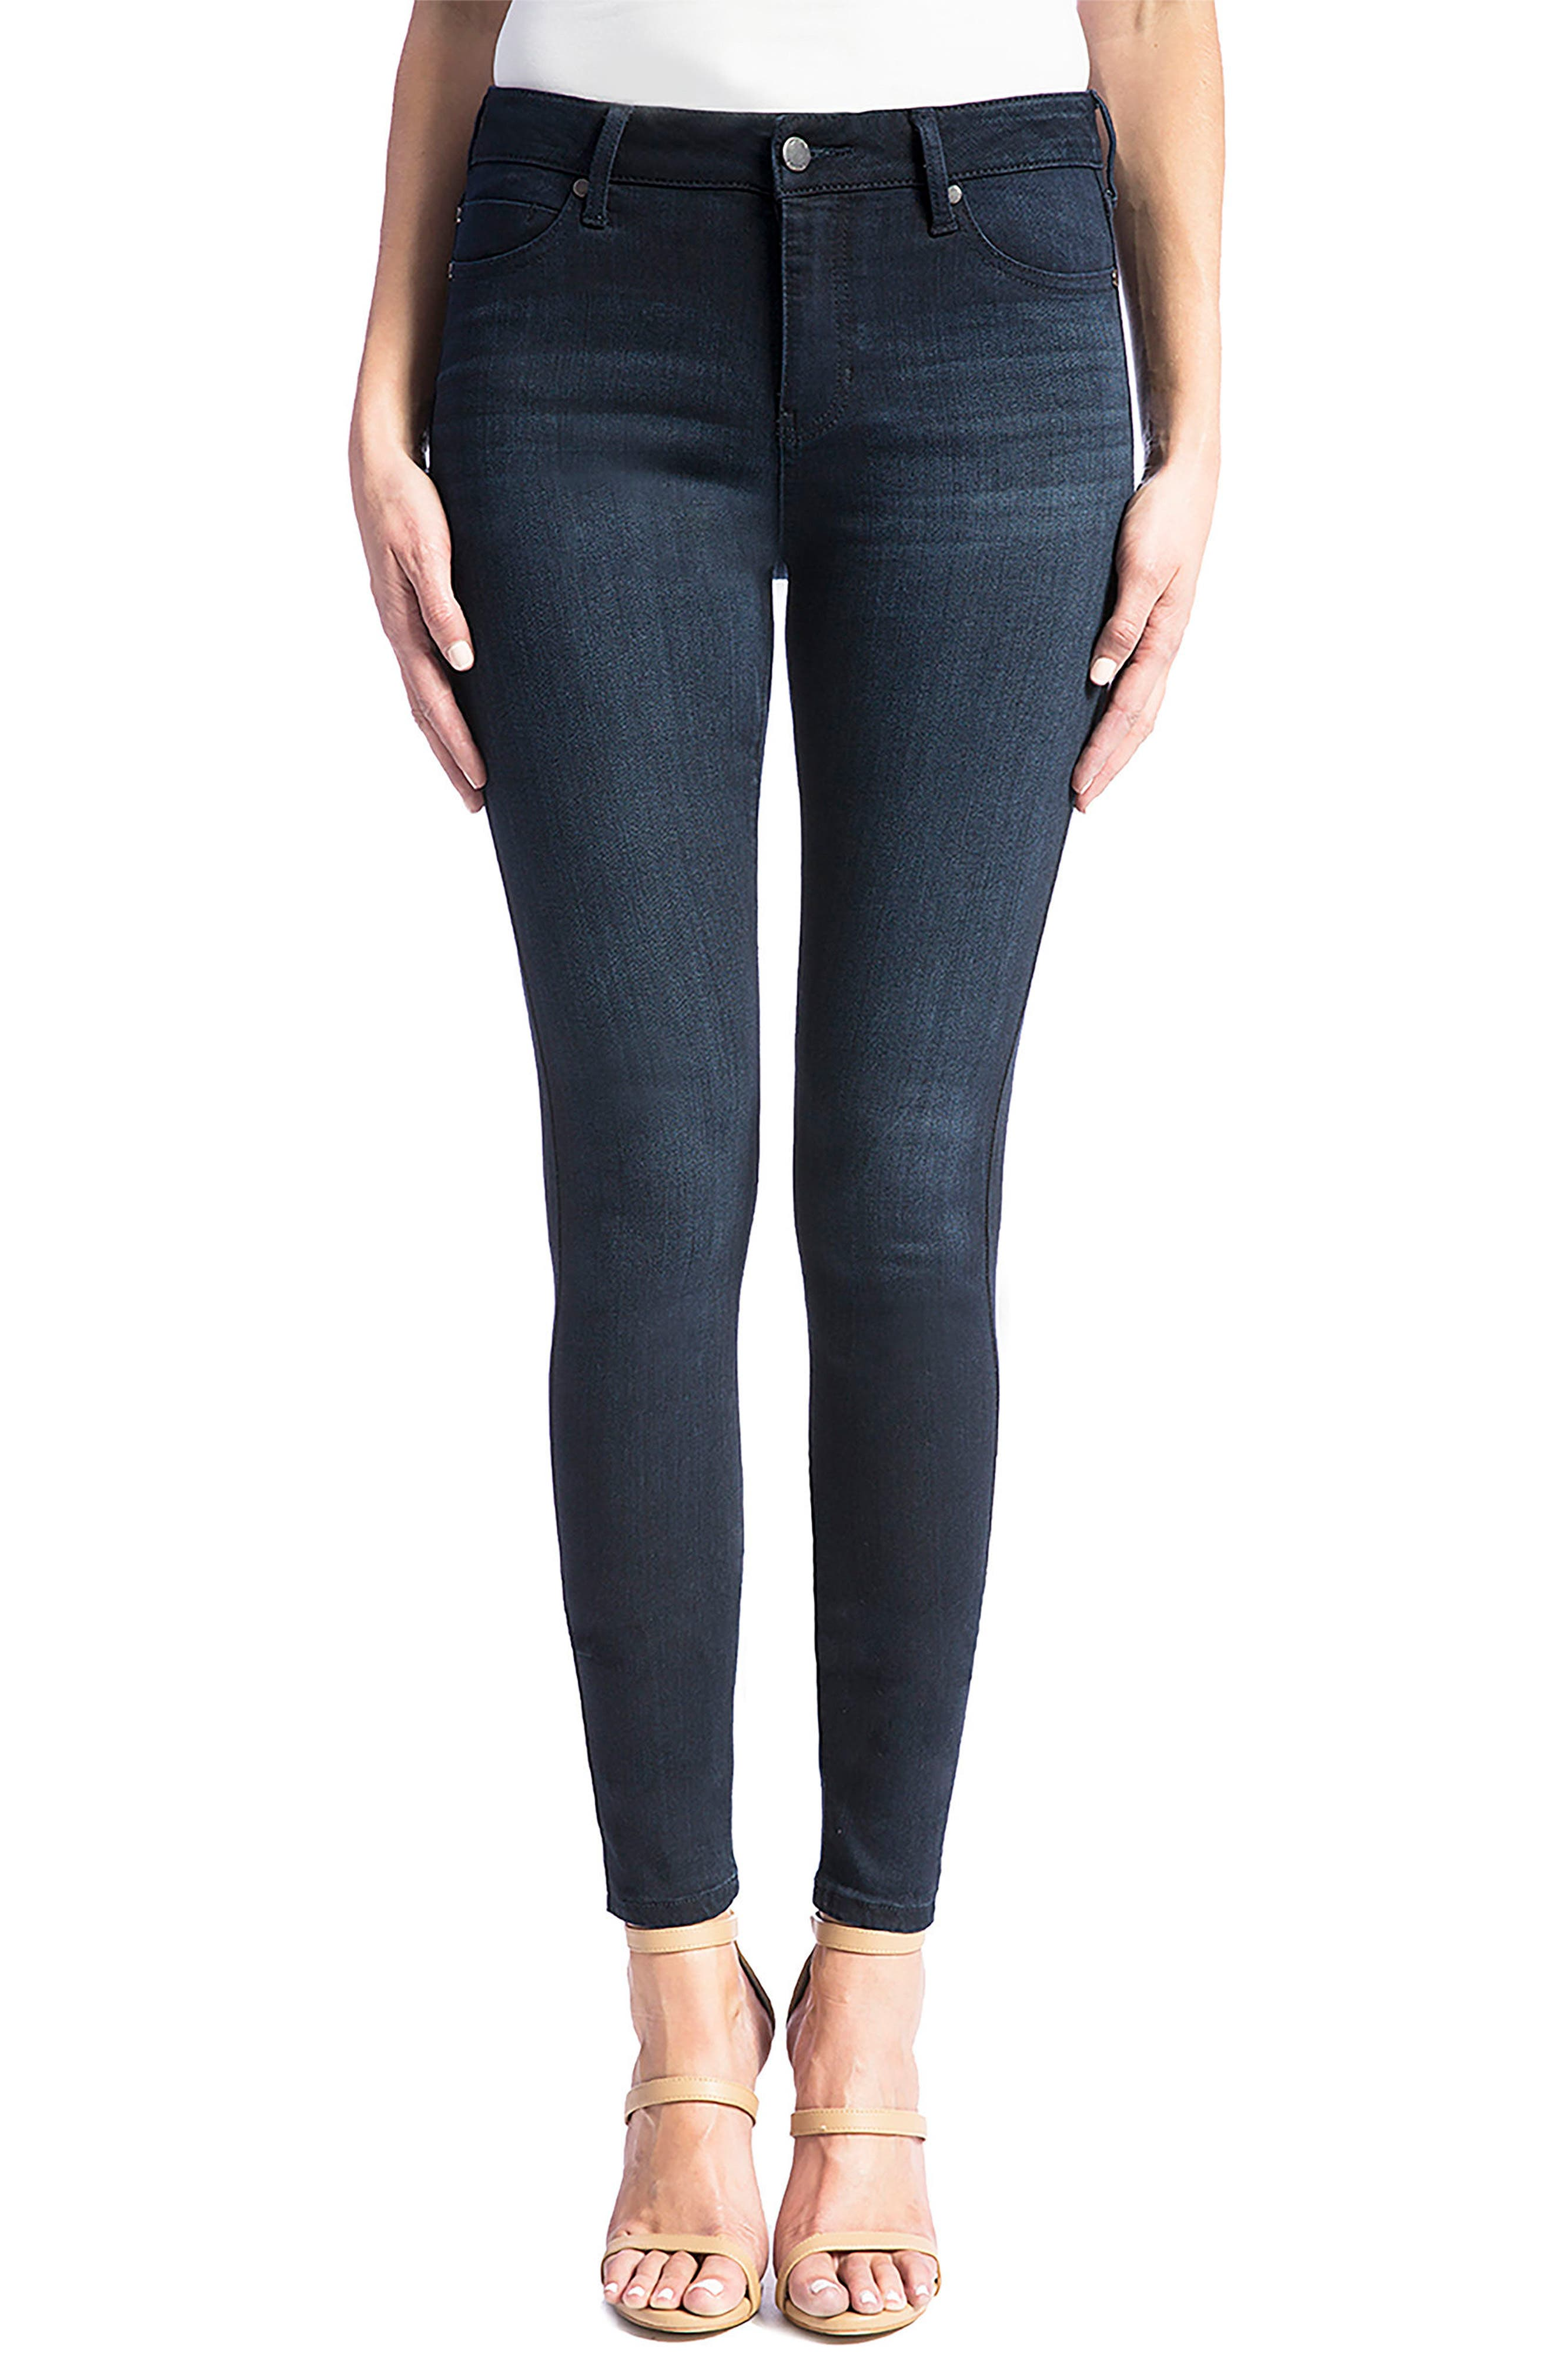 Main Image - Liverpool Jeans Co. Abby Stretch Skinny Jeans (Stone) (Petite)